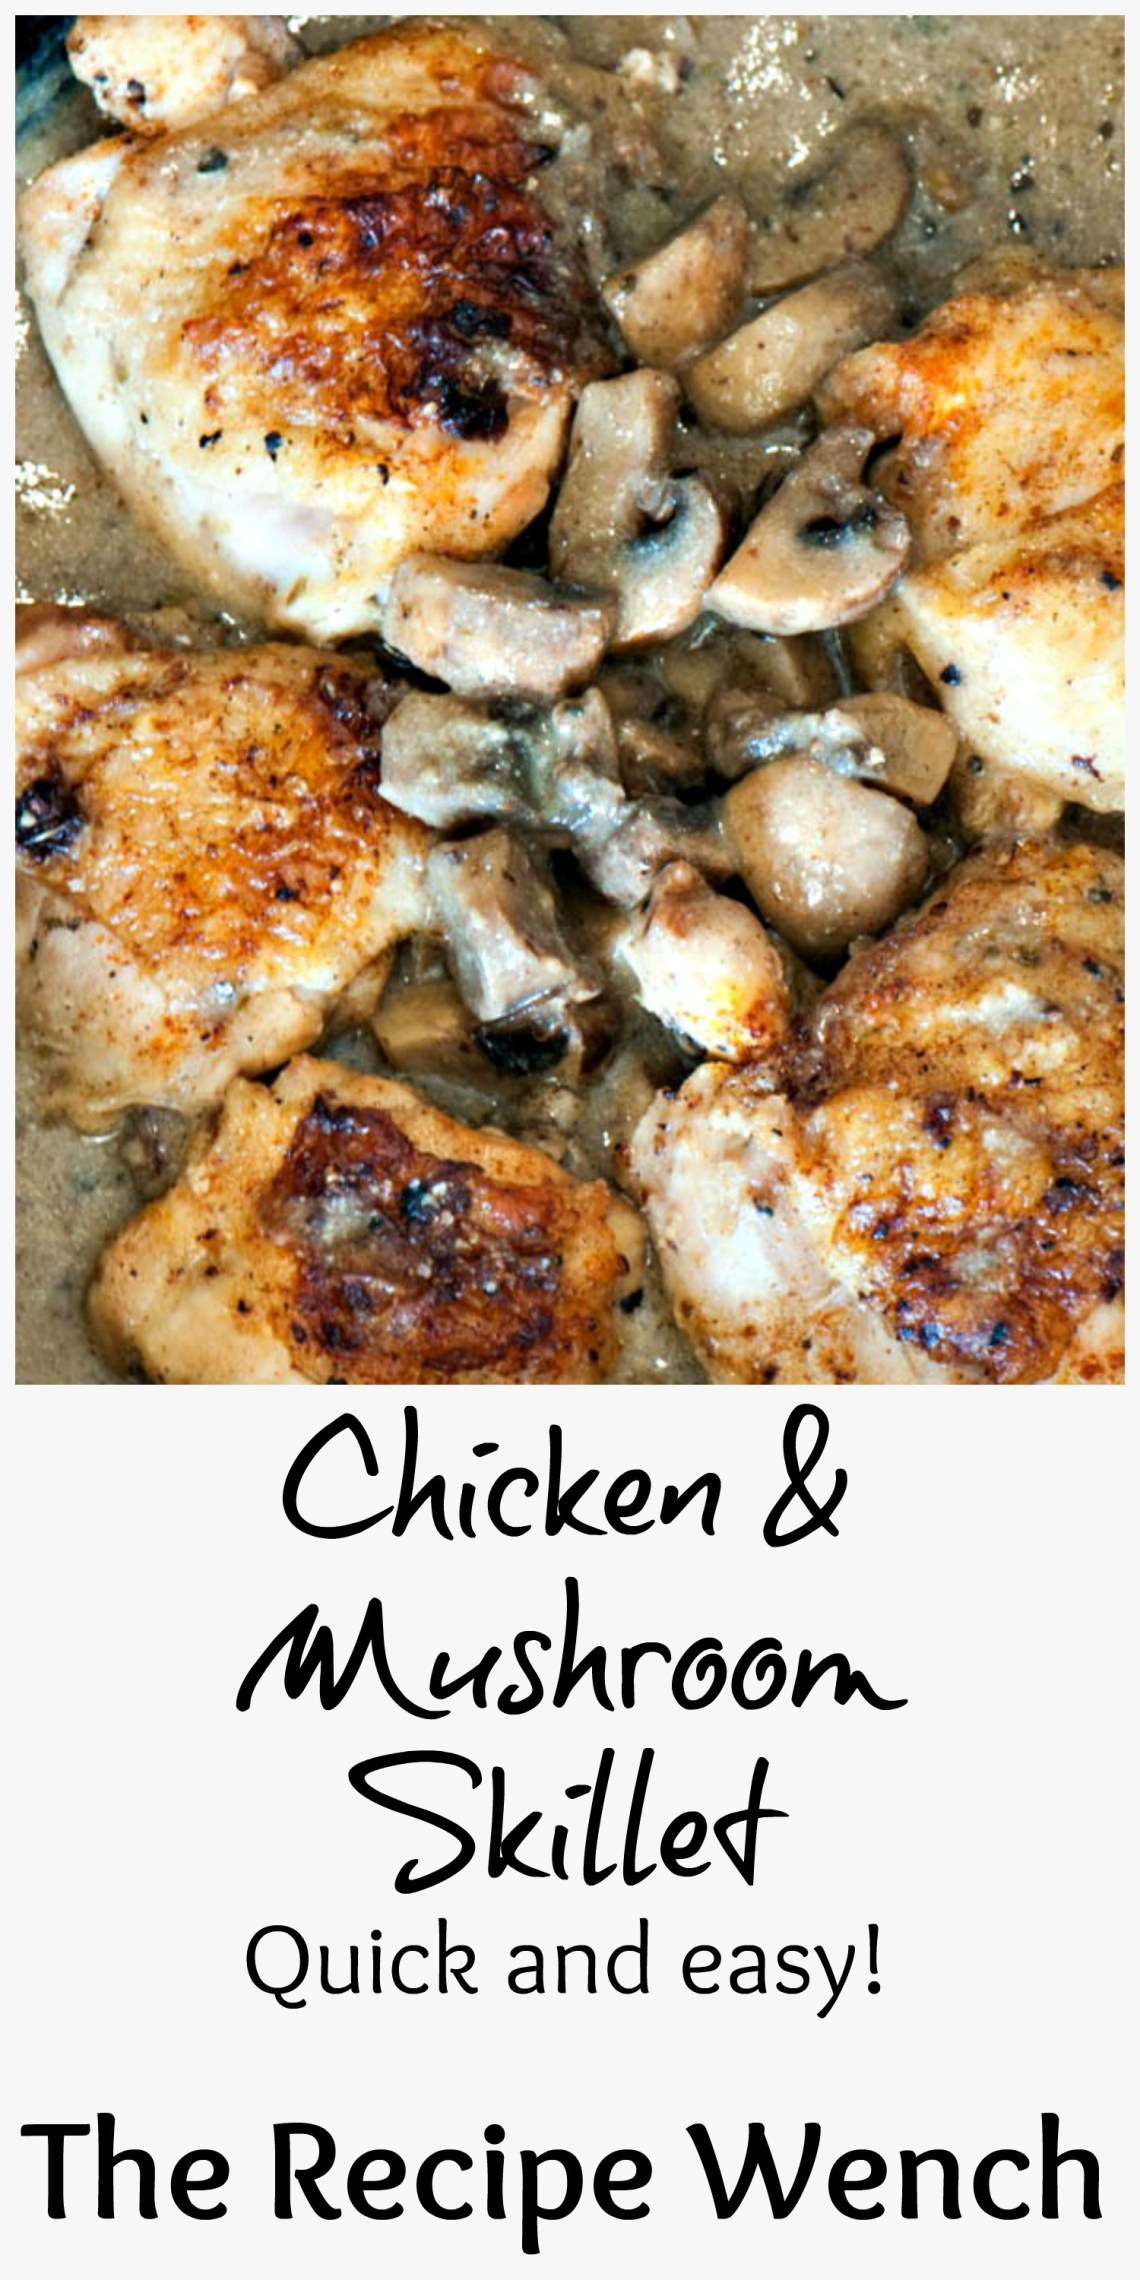 Chicken Mushroom Skillet is a easy meal -- perfect for weeknights! | The Recipe Wench